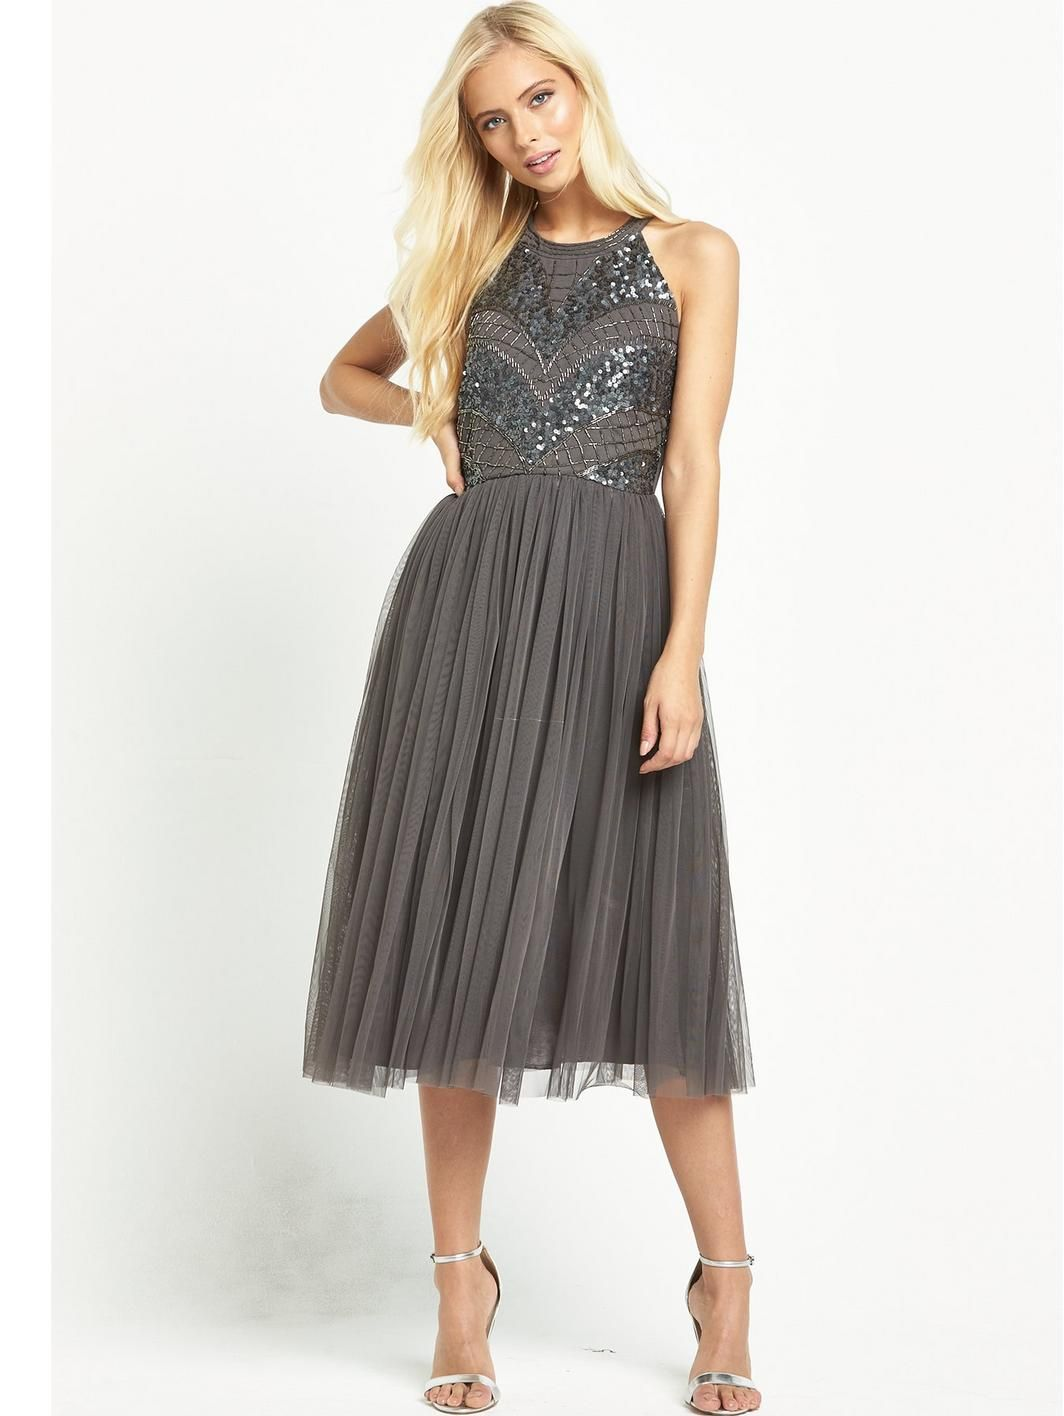 High neck embellished body dress grey httplittlewoods shop for dresses online with littlewoods ireland ombrellifo Image collections